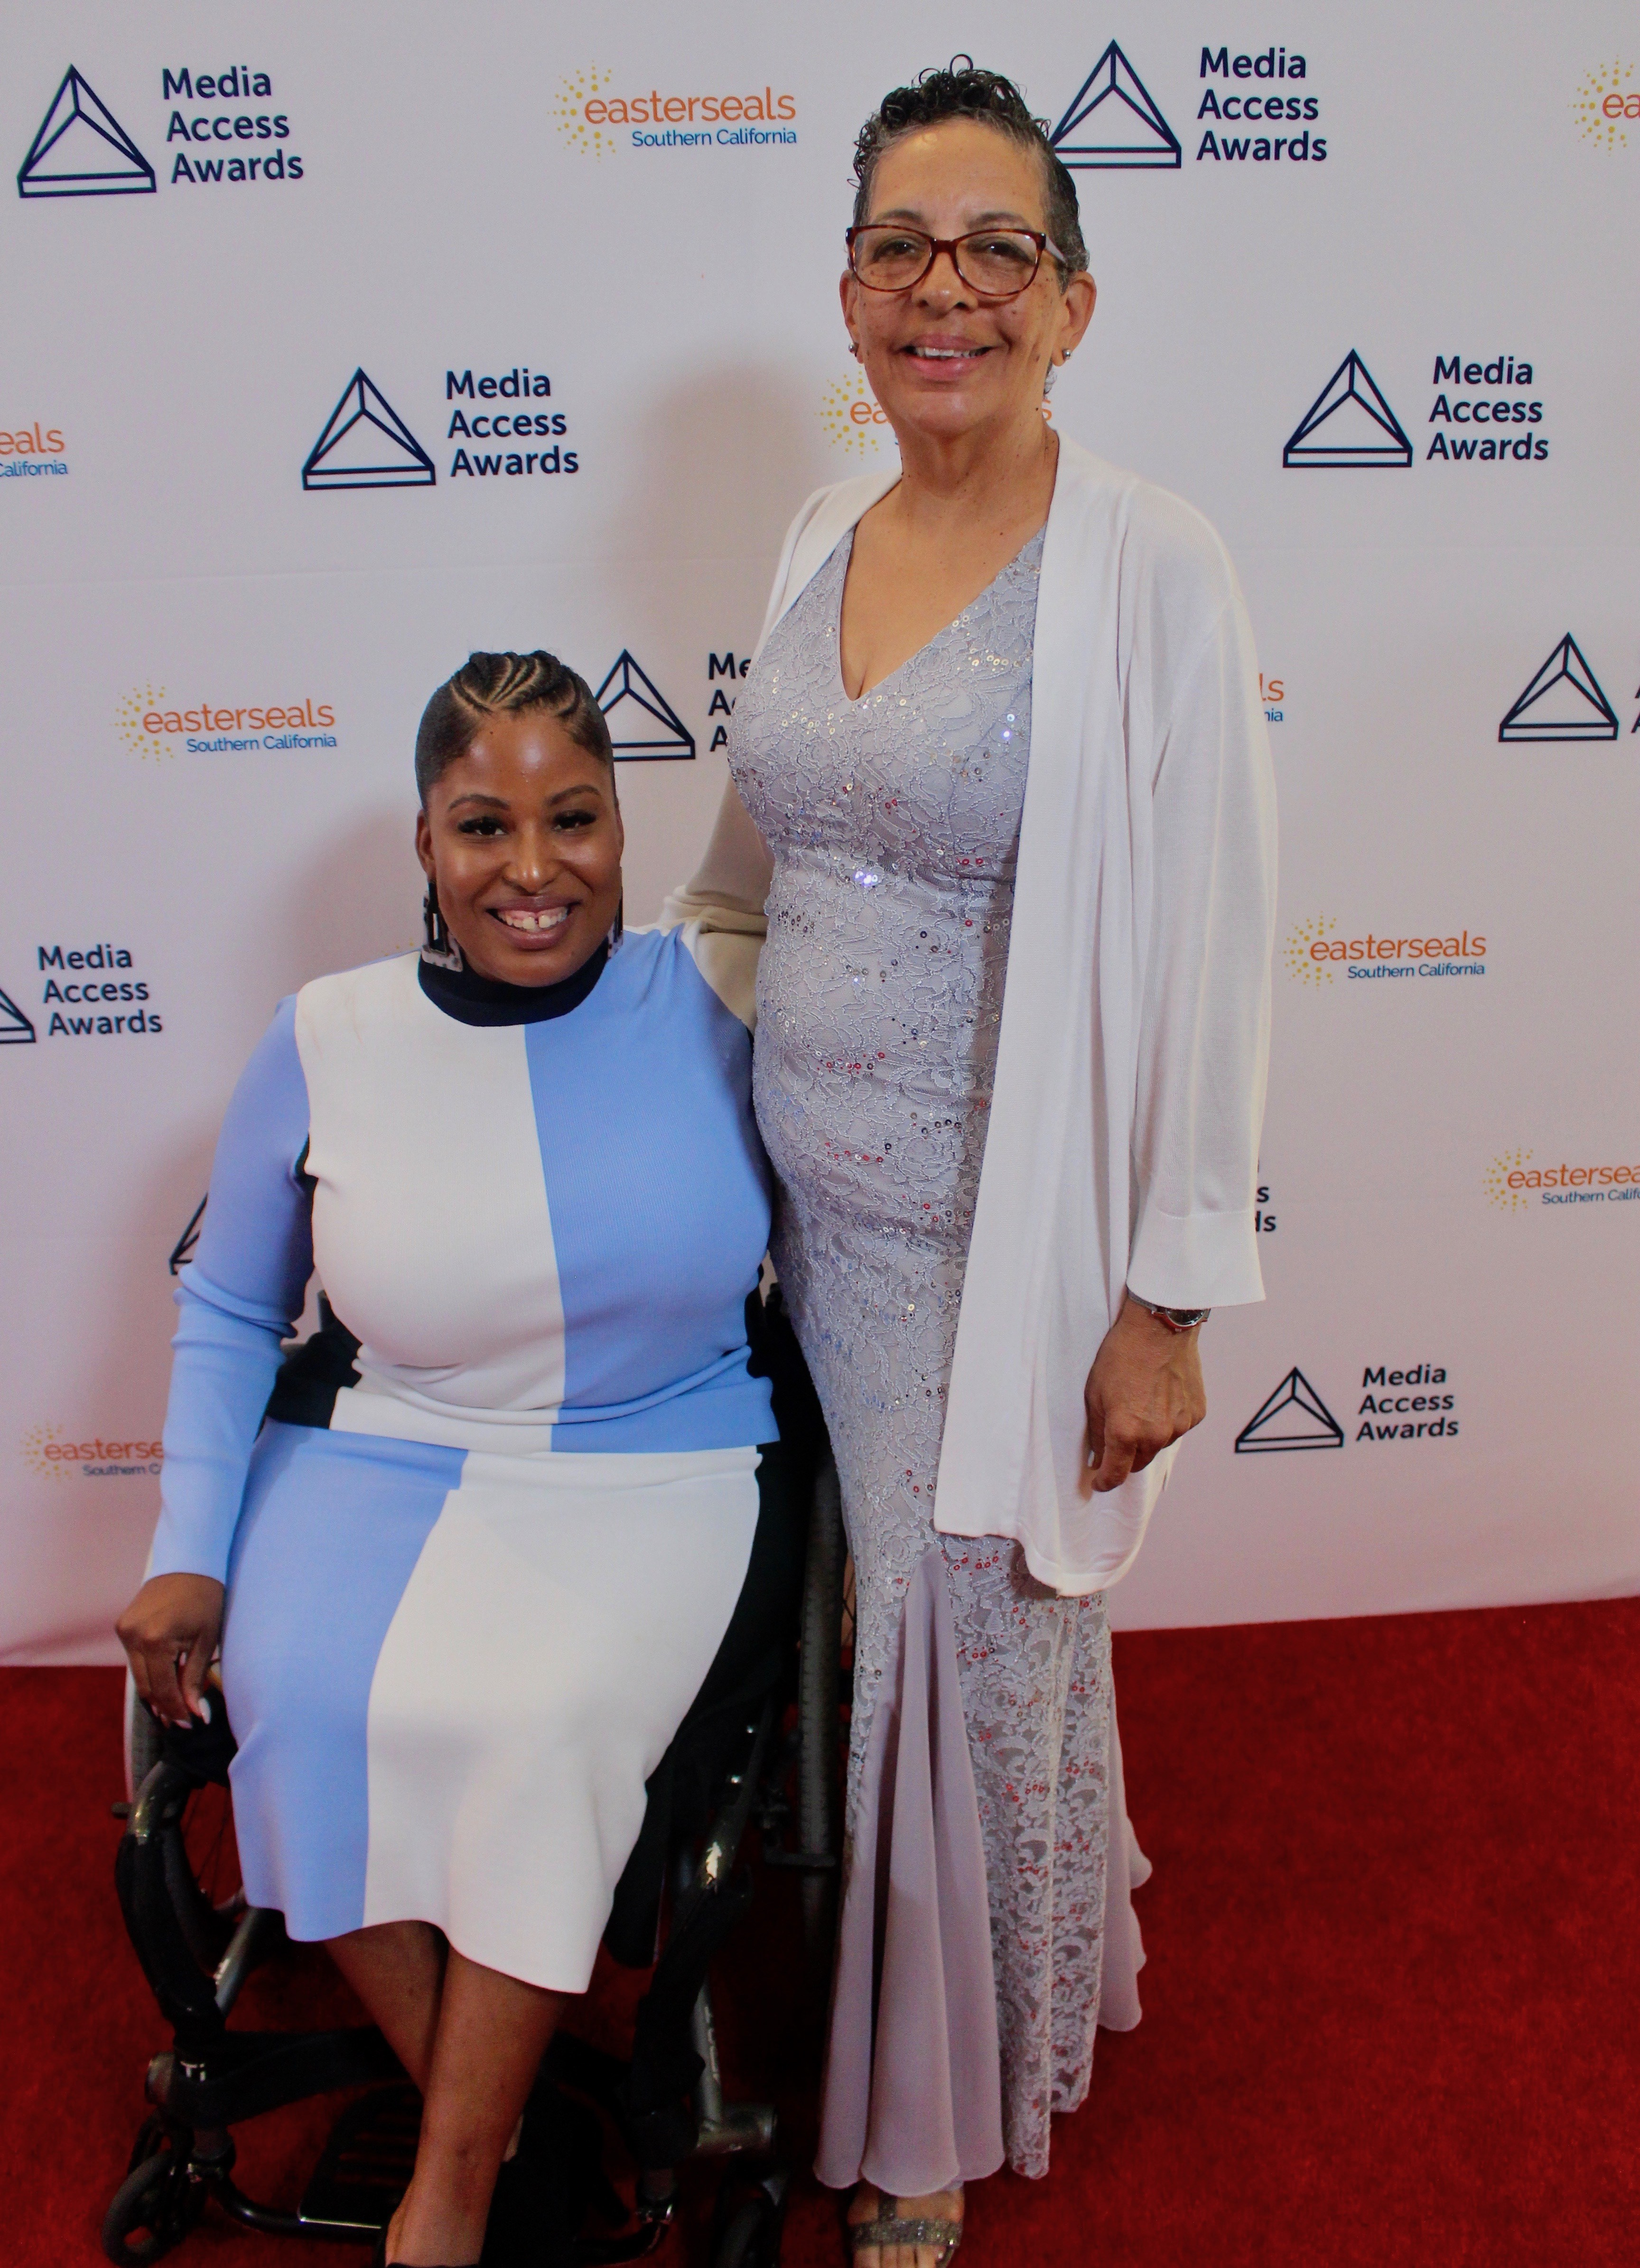 Tatiana Lee and her mother on the Red Carpet at the Media Access Awards.